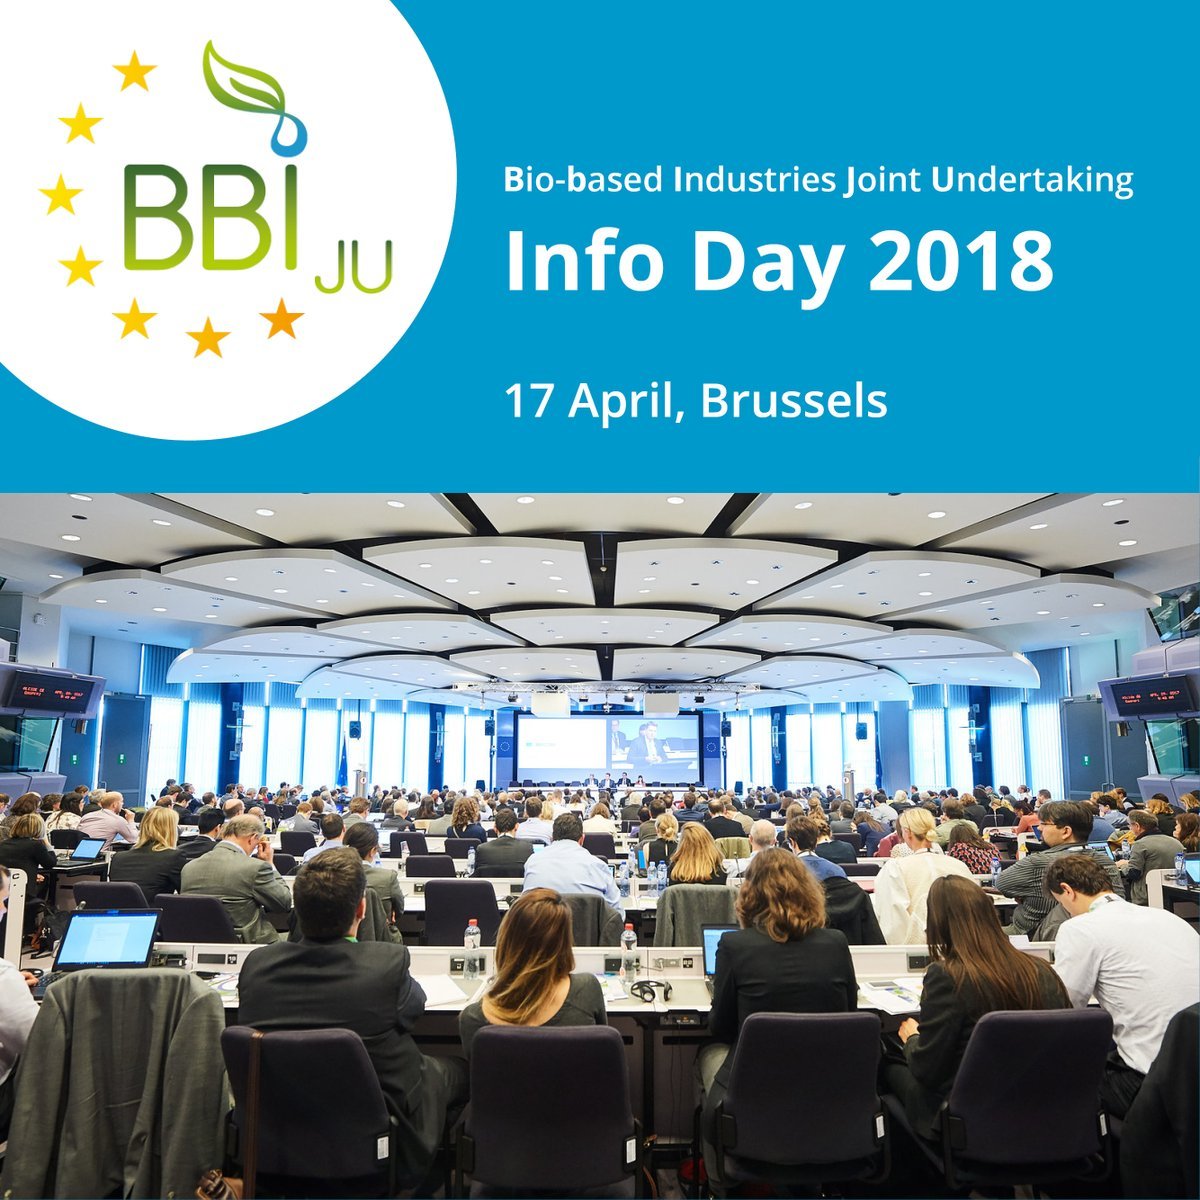 Jan 2018 – Bio-based Industries Joint Undertaking Info Day (17 April 2018 in Brussels)